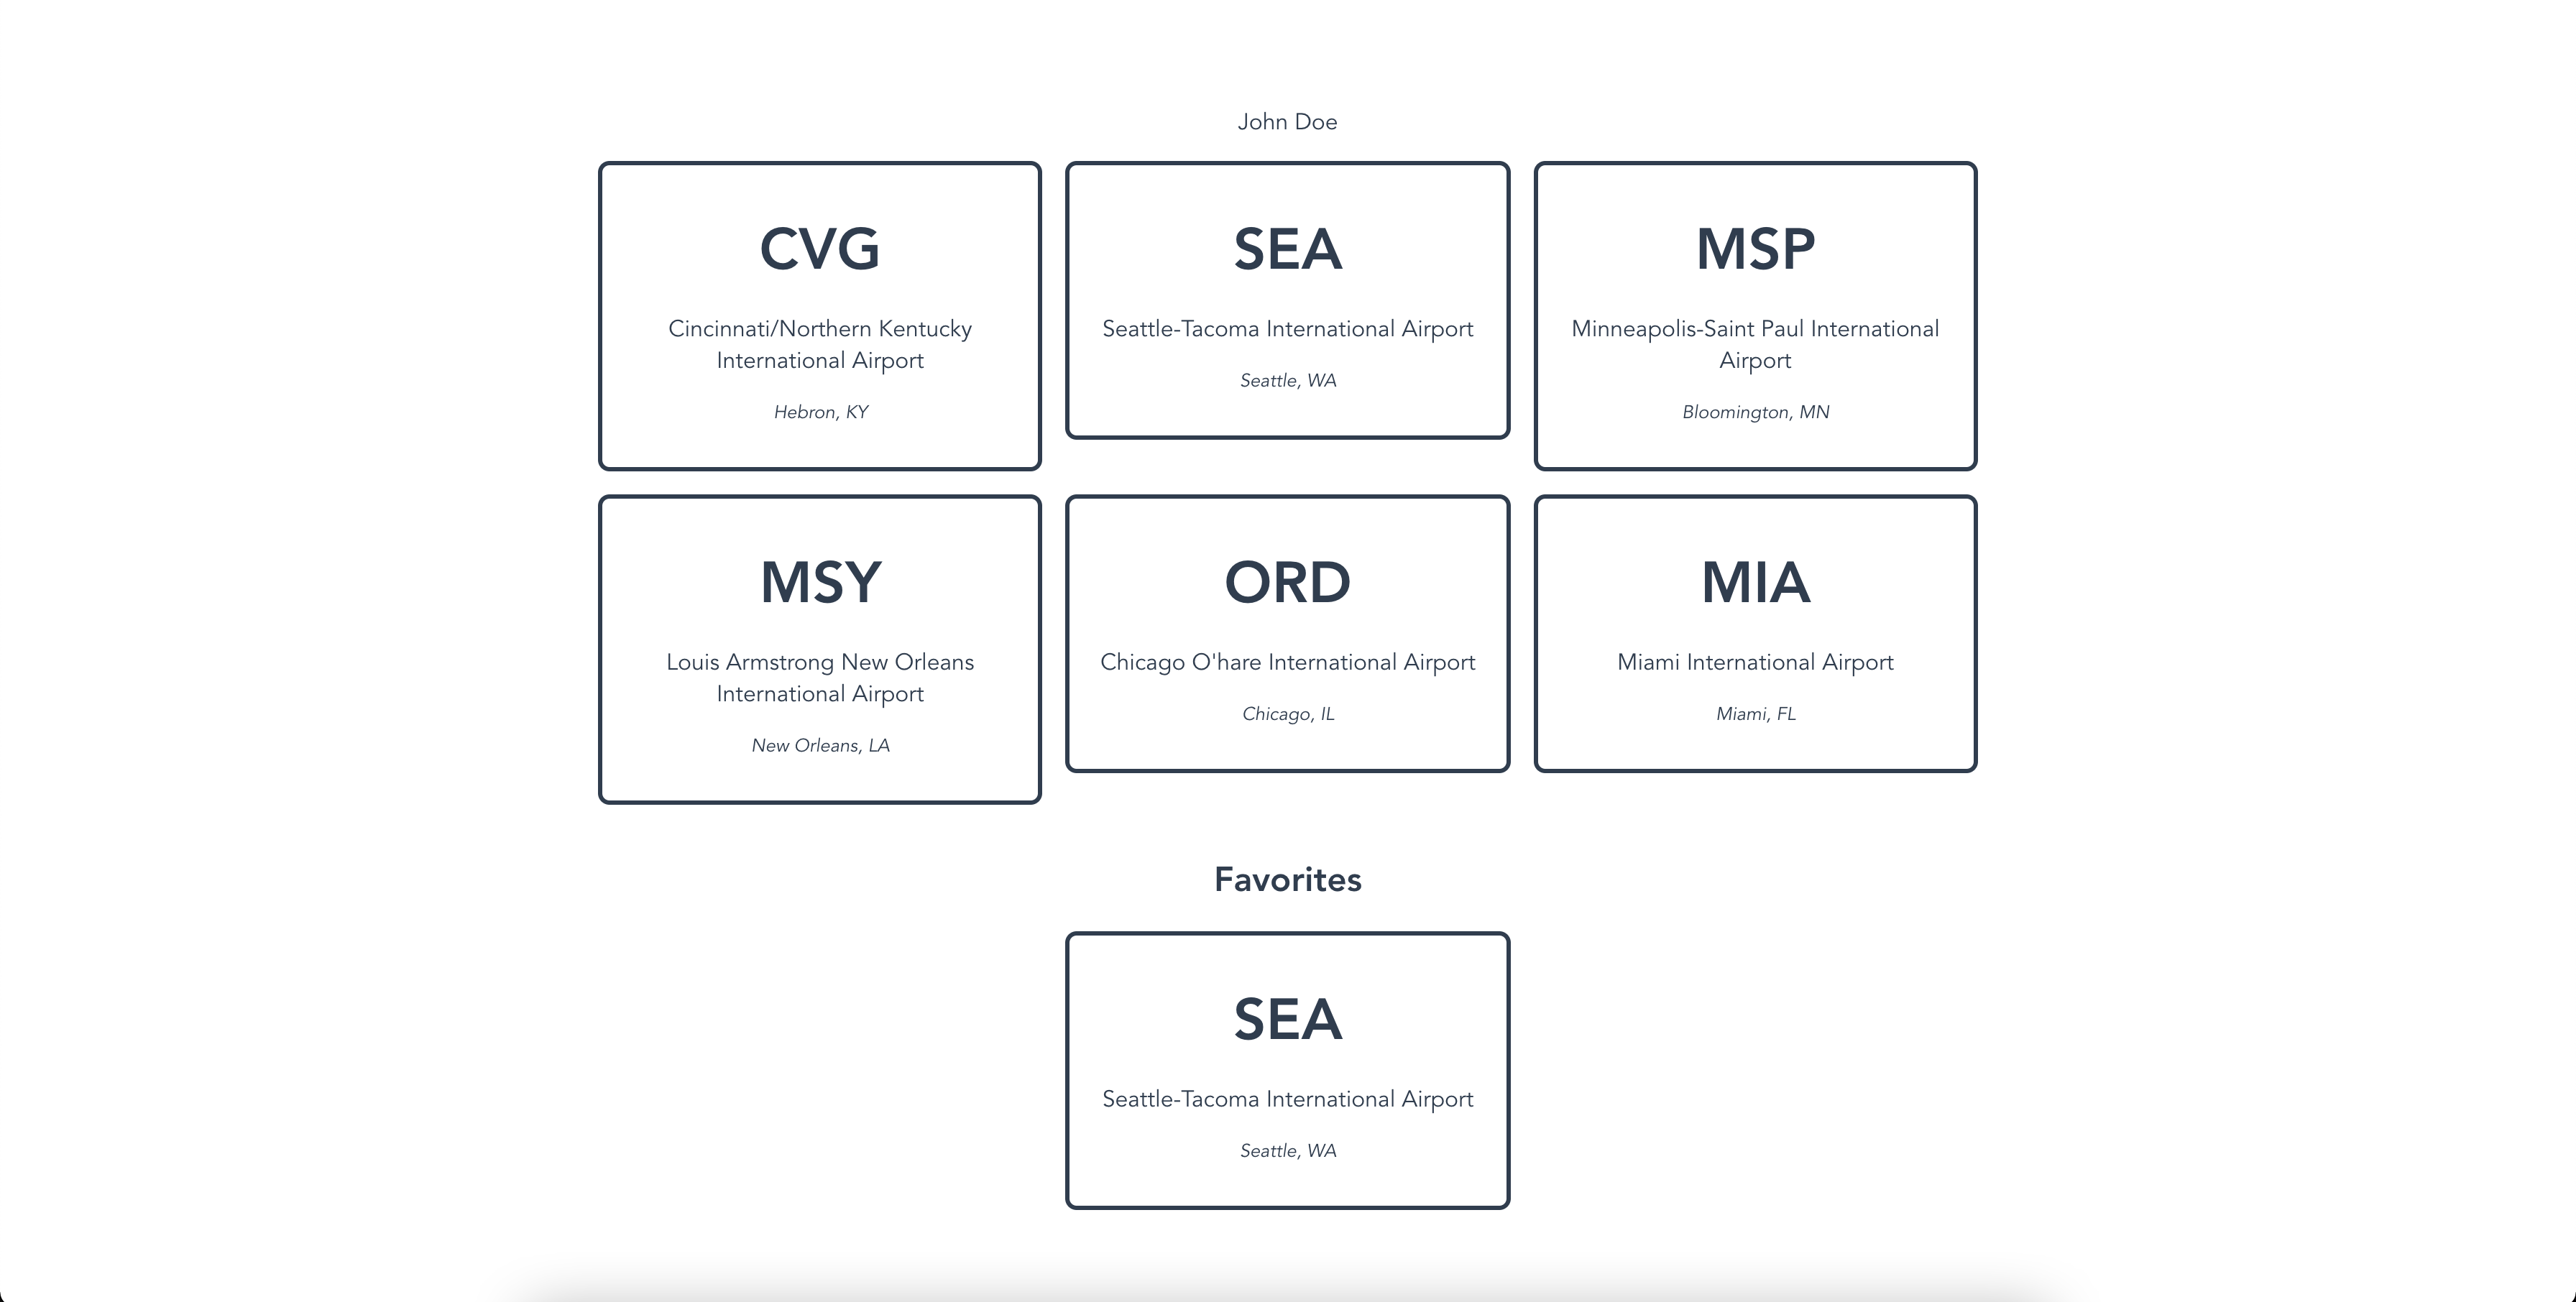 A favorite airport added to the favorite airports section after a Vuex mutation was executed.